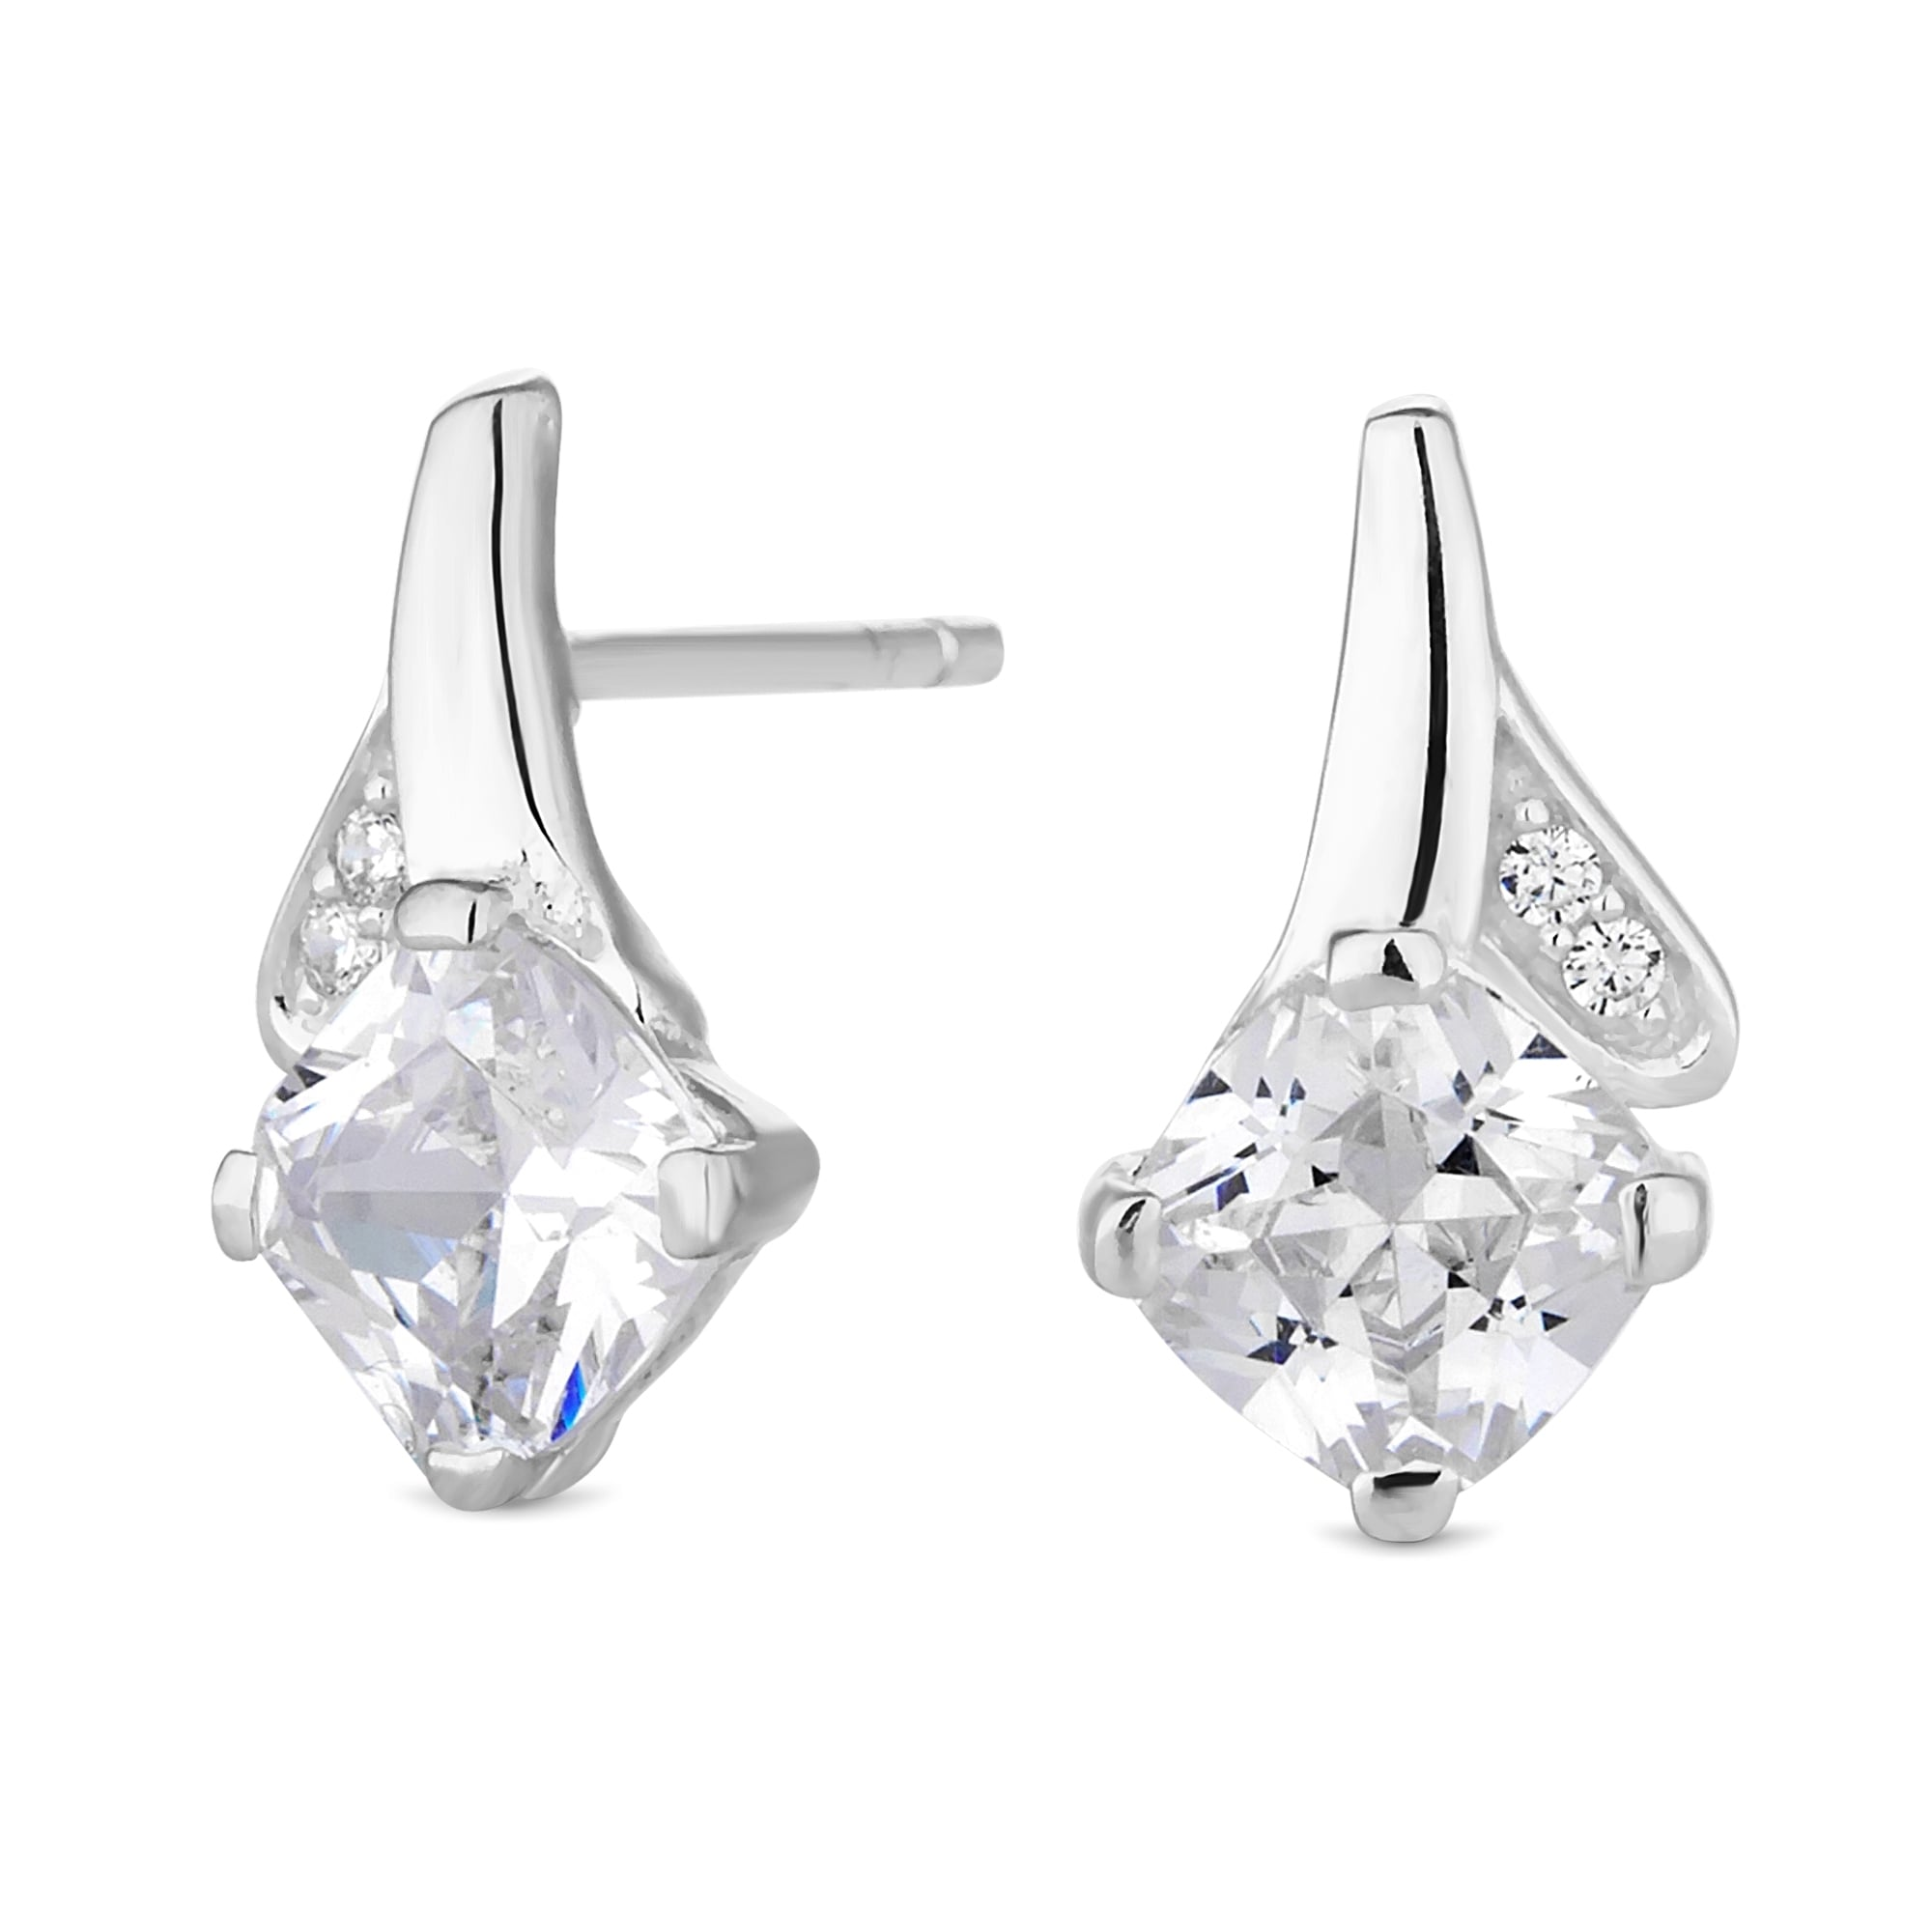 product junot ben pairs set stud usa steel zirconia earrings stainless cubic